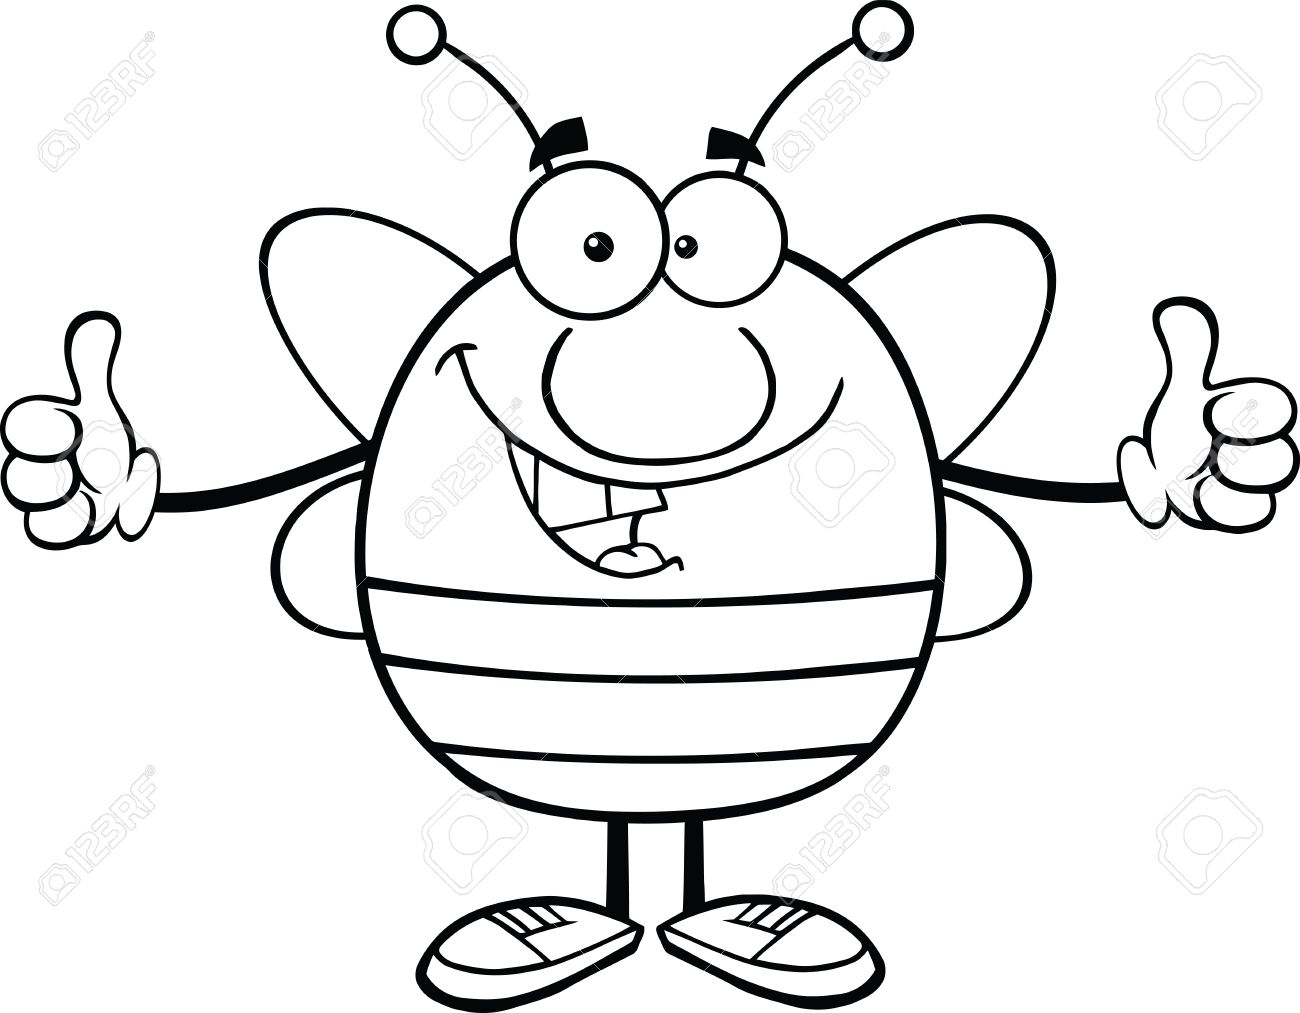 1300x1013 Bee Clipart Thumbs Up